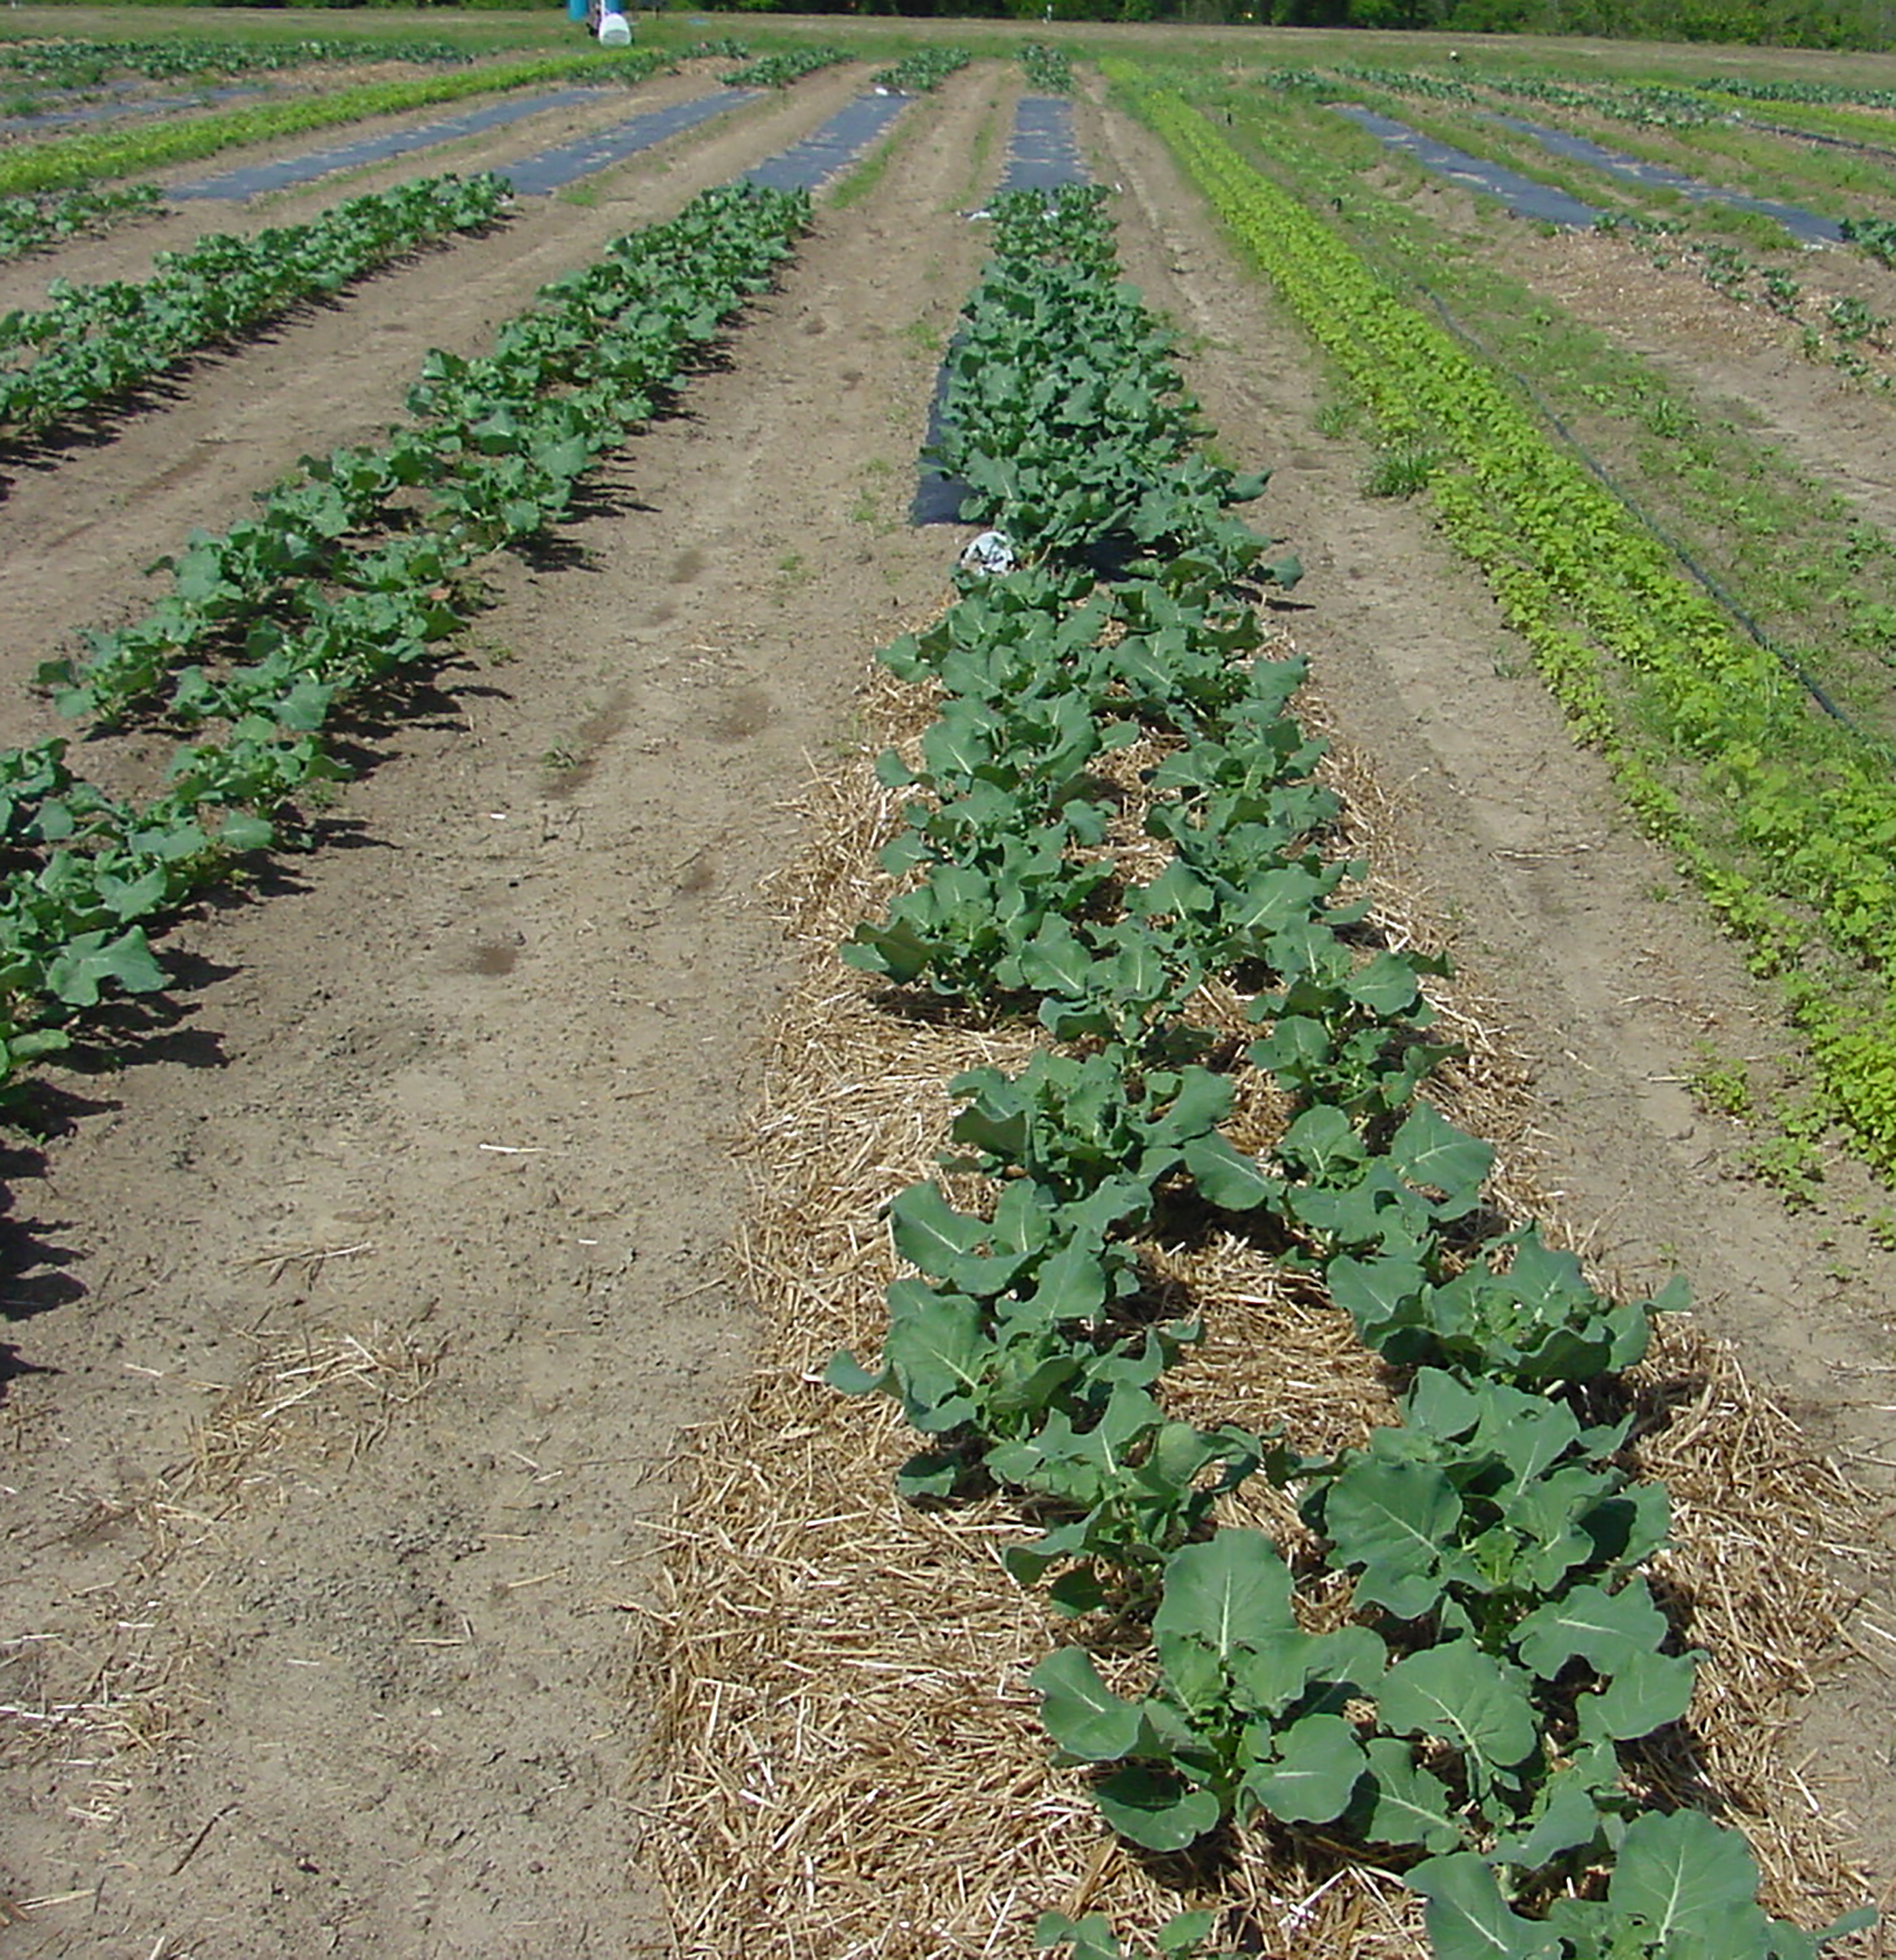 Broccoli grown on the UGA Tifton Campus is pictured growing on wheat straw mulch, plastic mulch and on bare soil.